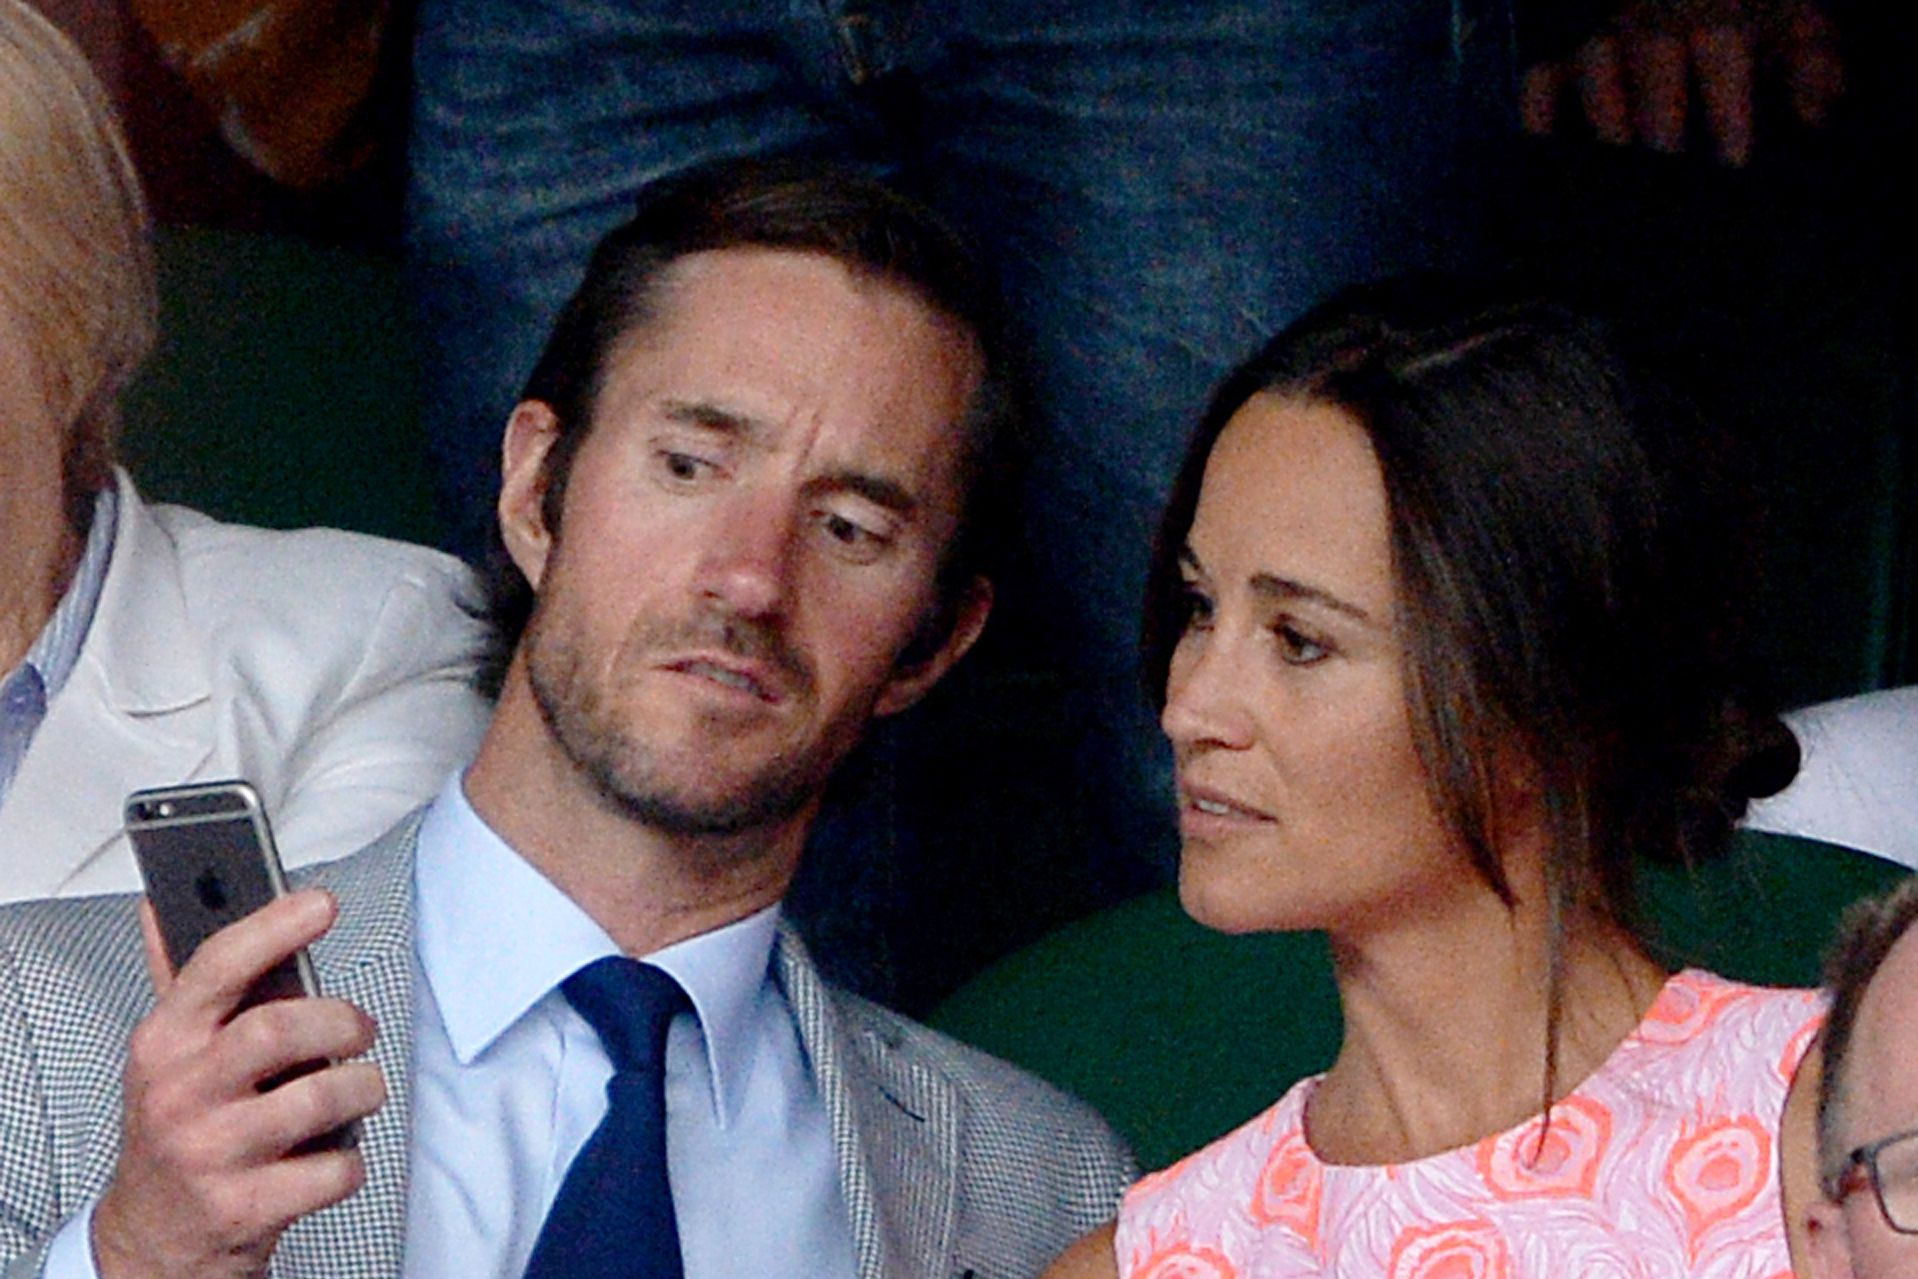 spencer made in chelsea brother dating pippa Vogue williams has been dating the ex-made in chelsea star for less brother james wed pippa middleton earlier this year, last december in.